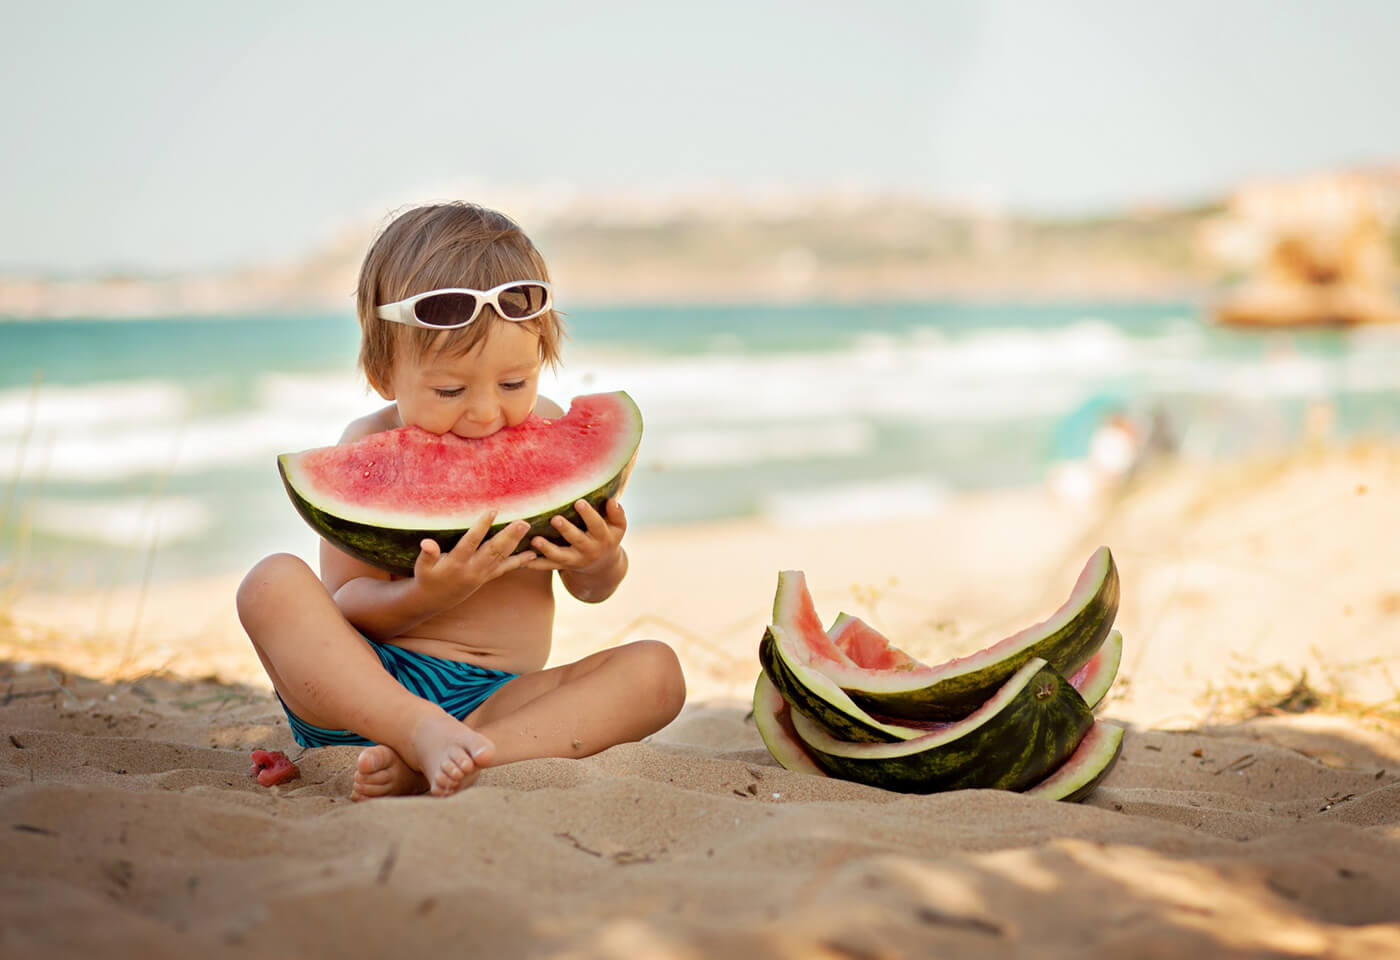 Image of child eating watermelon